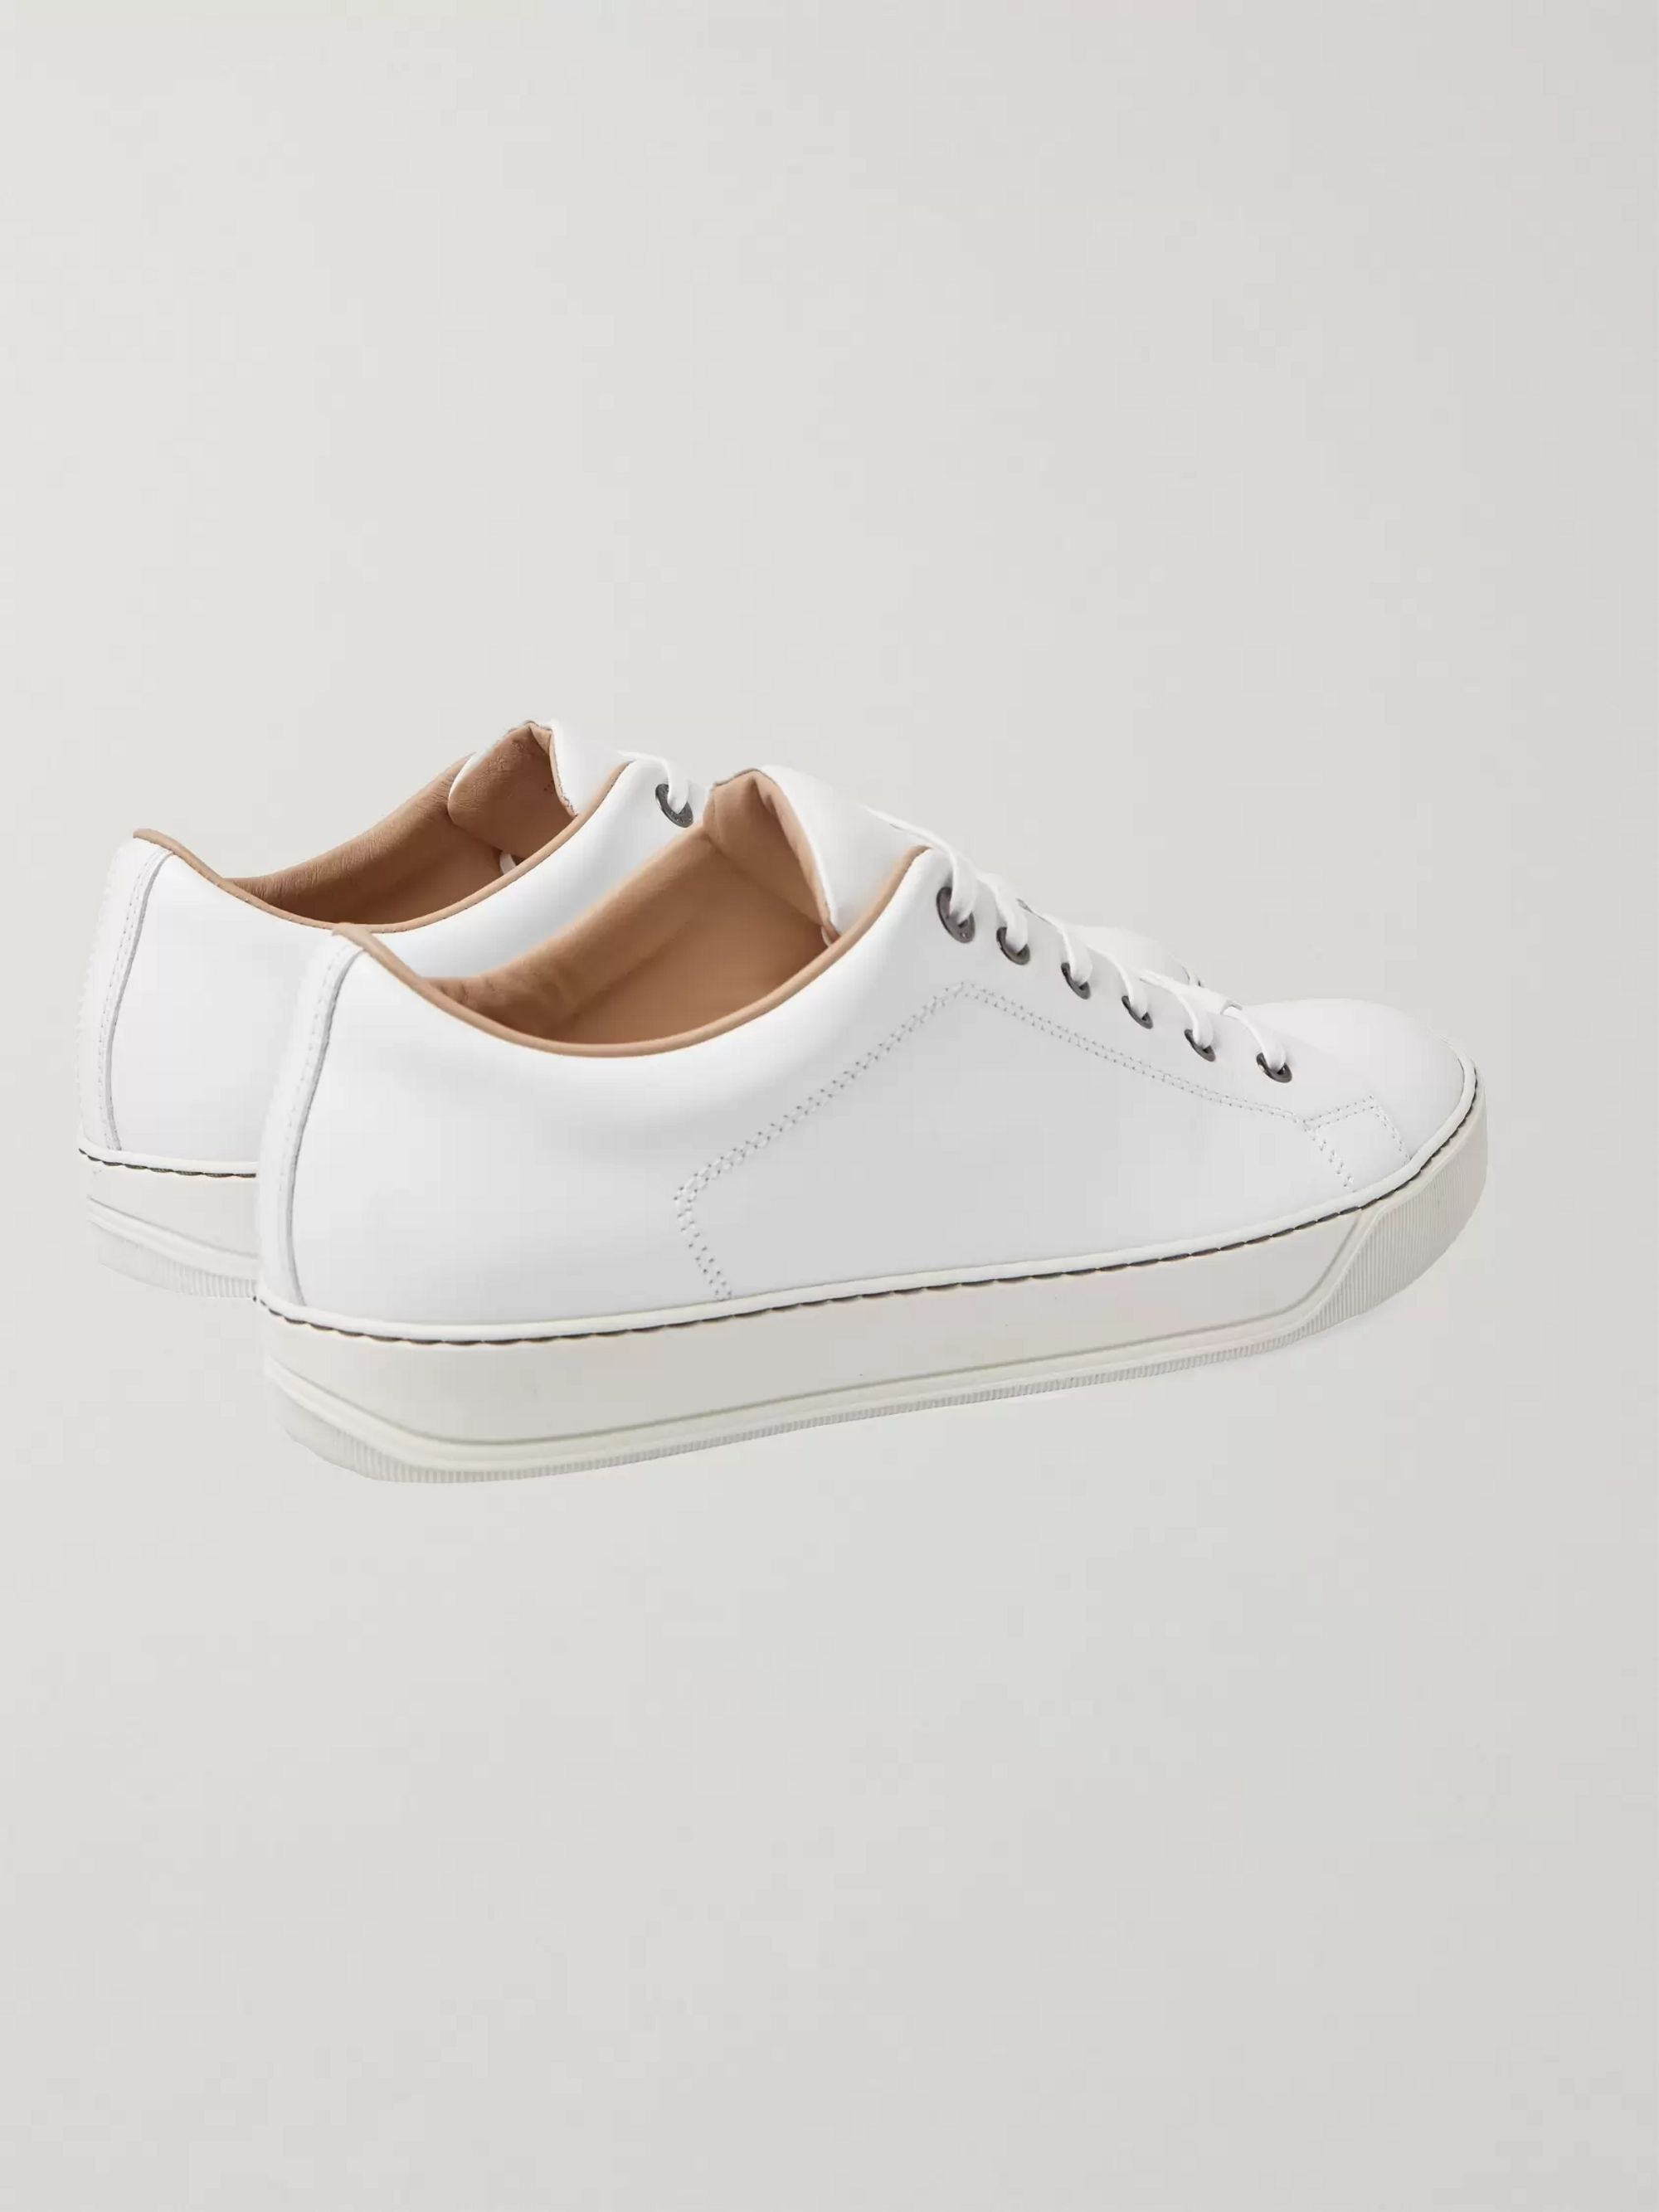 Lanvin Leather Sneakers